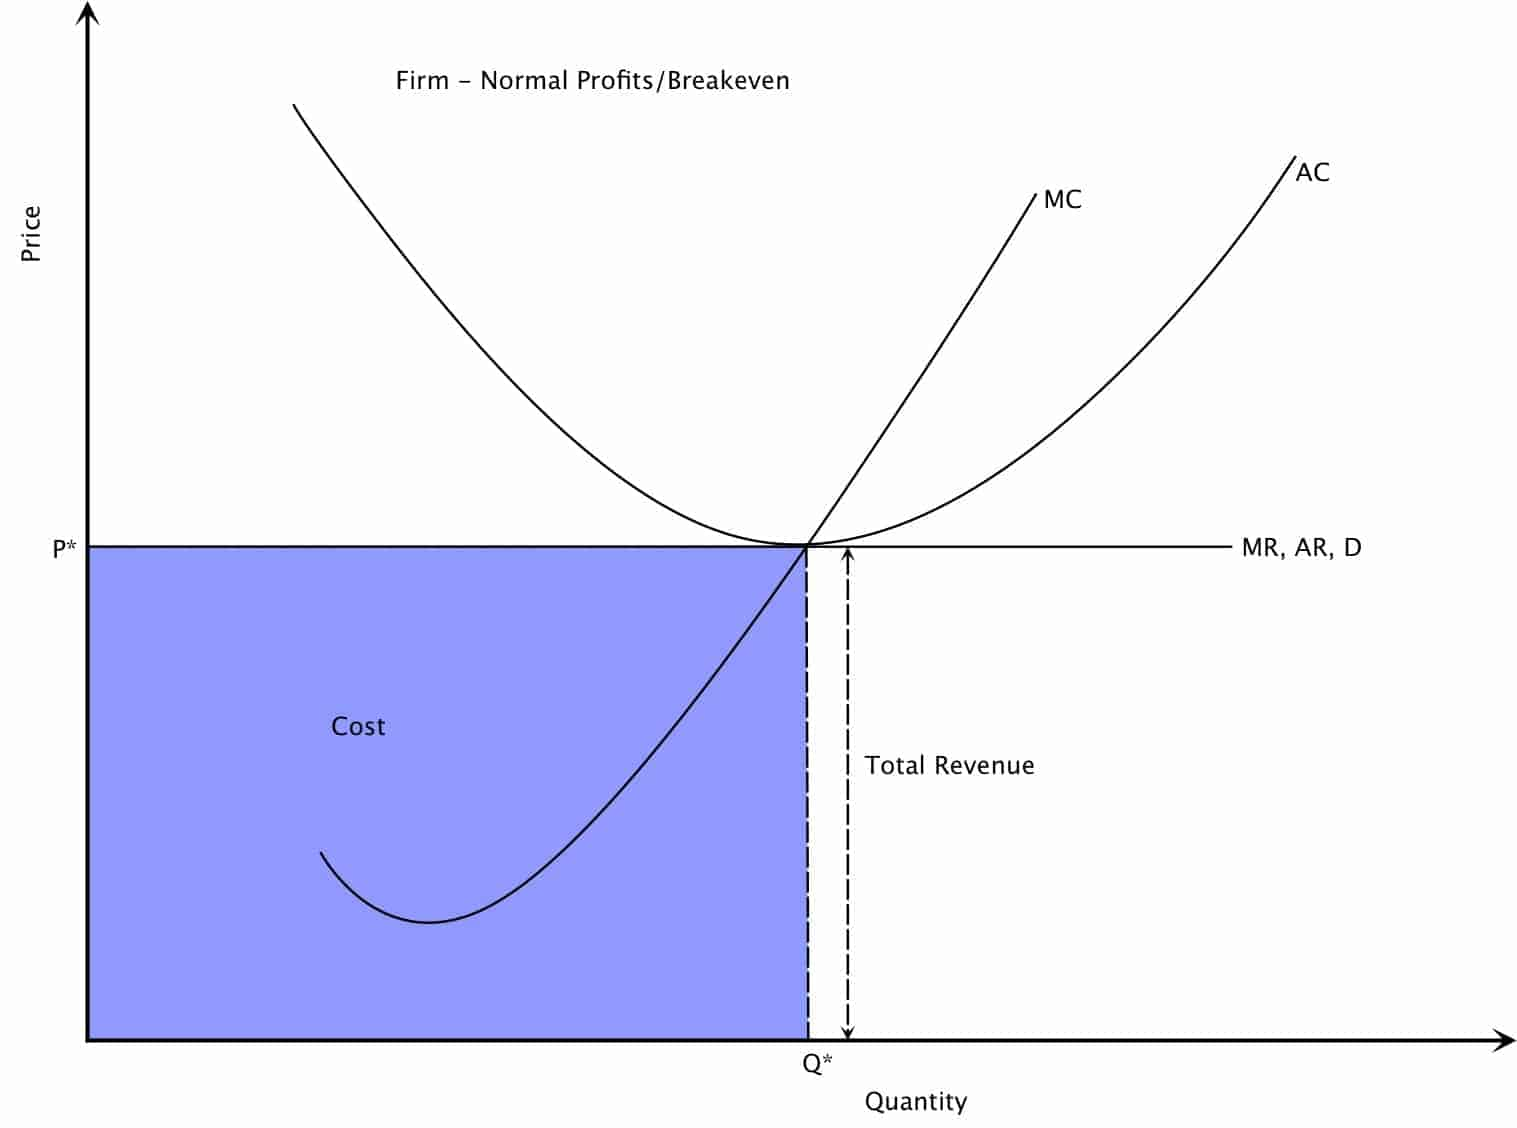 Resulting in Normal Profits for Every Firm